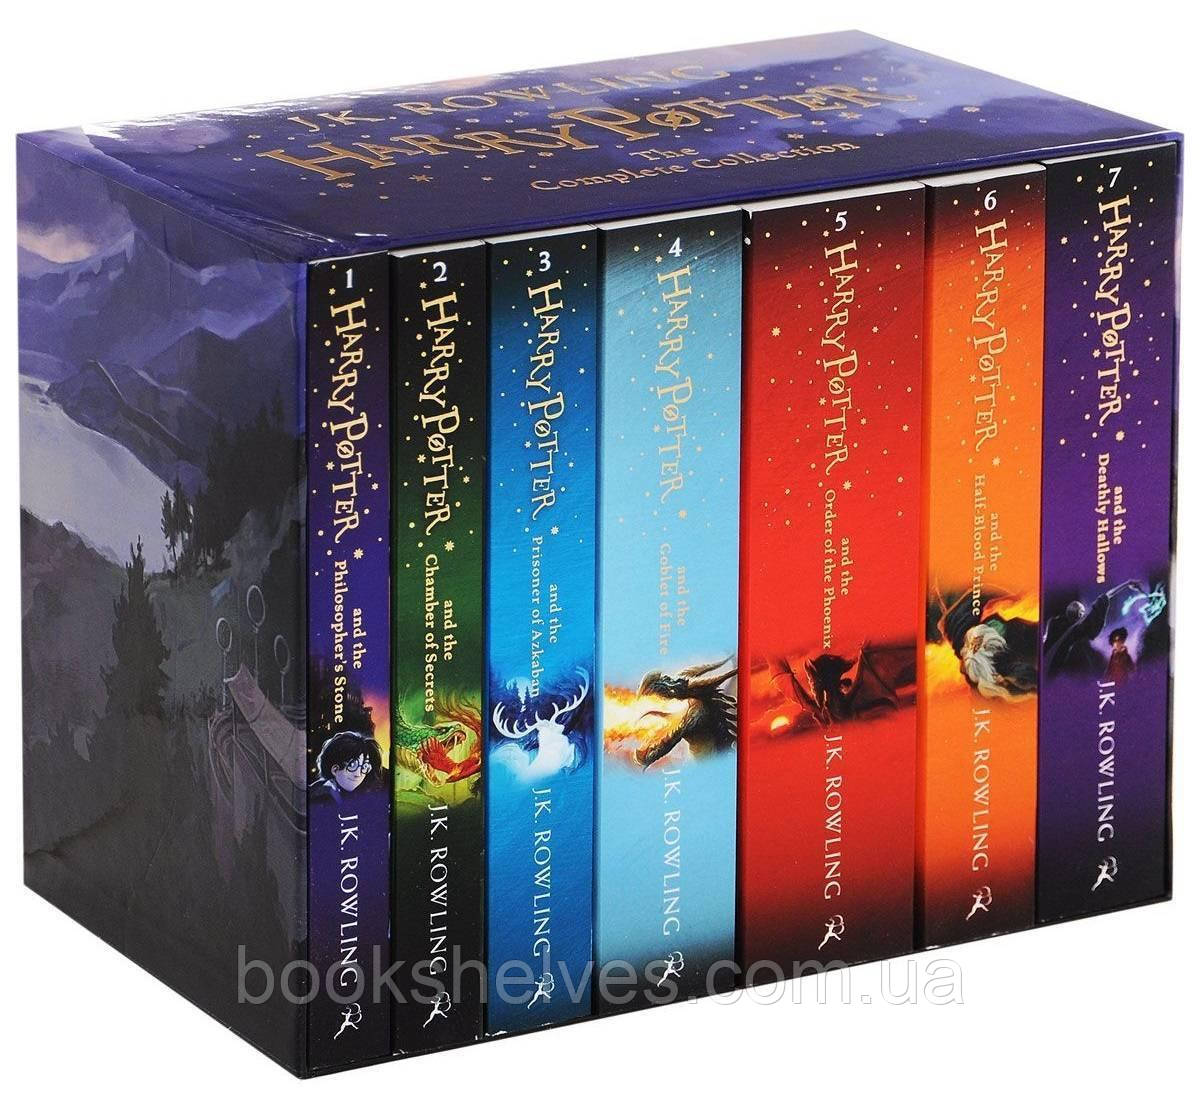 Harry Potter Boxed Set: The Complete Collection (Children's Edition)